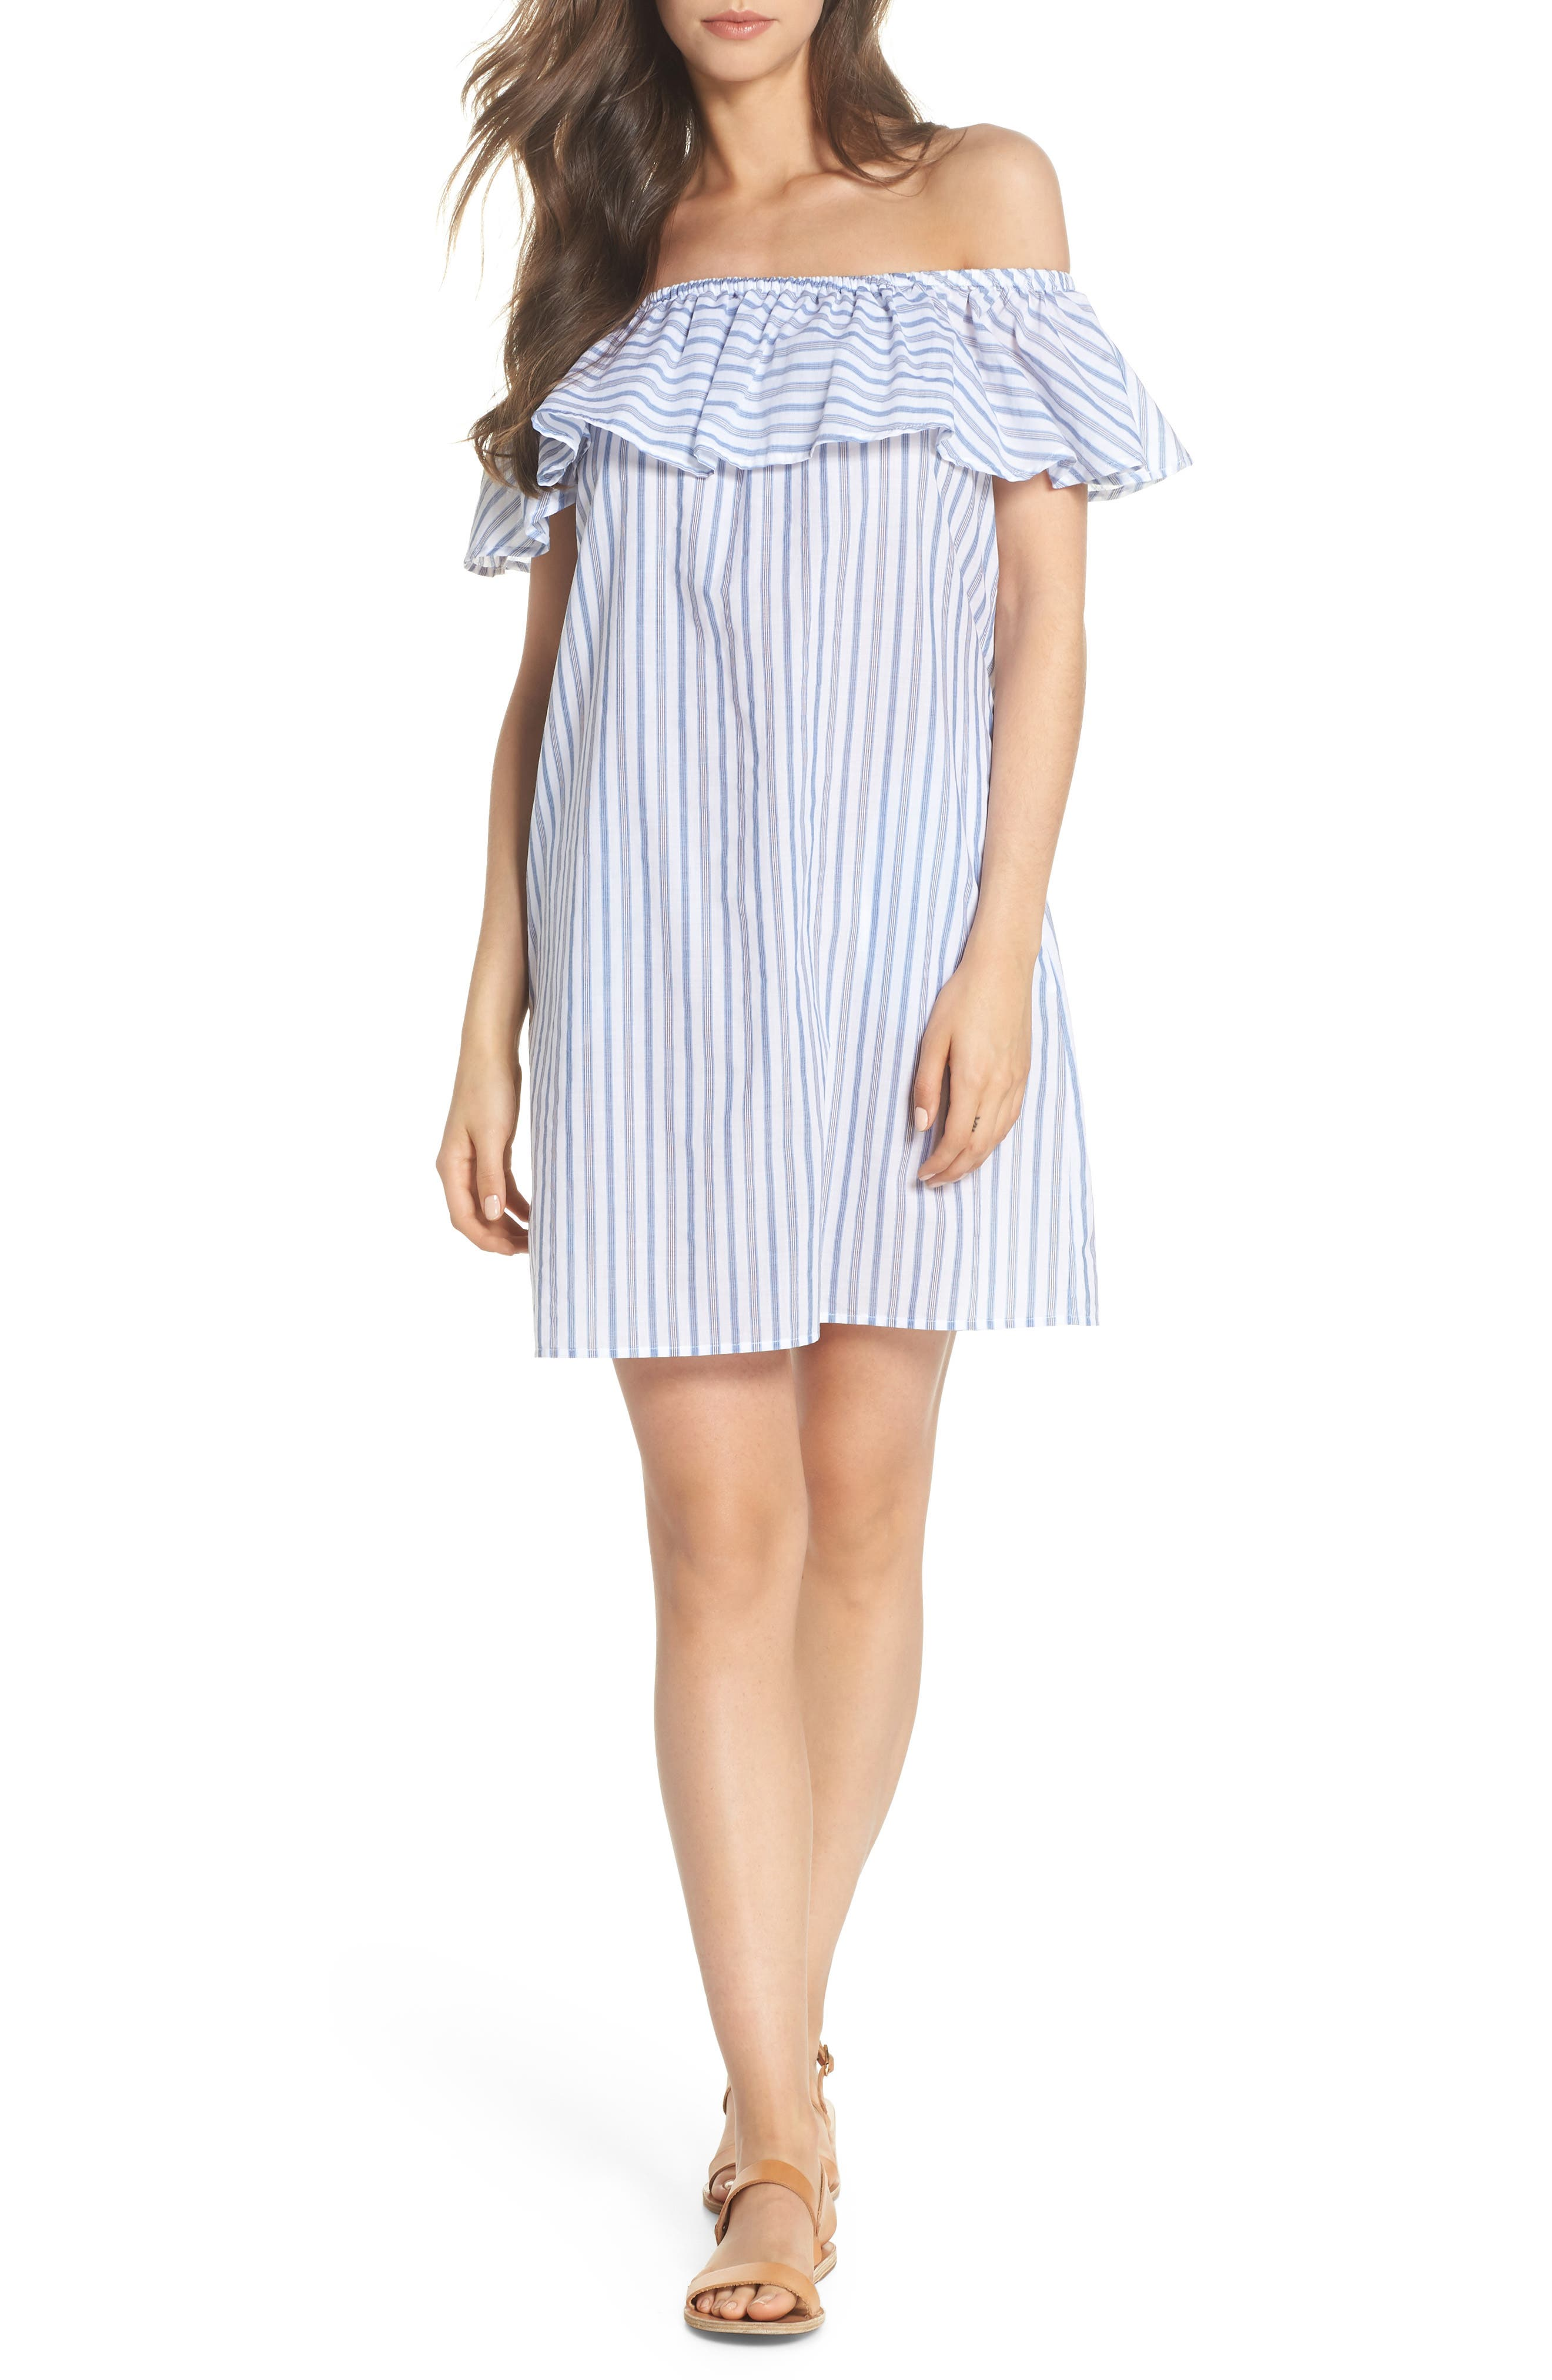 Ticking Stripe Off the Shoulder Cover-Up Dress,                             Main thumbnail 1, color,                             White